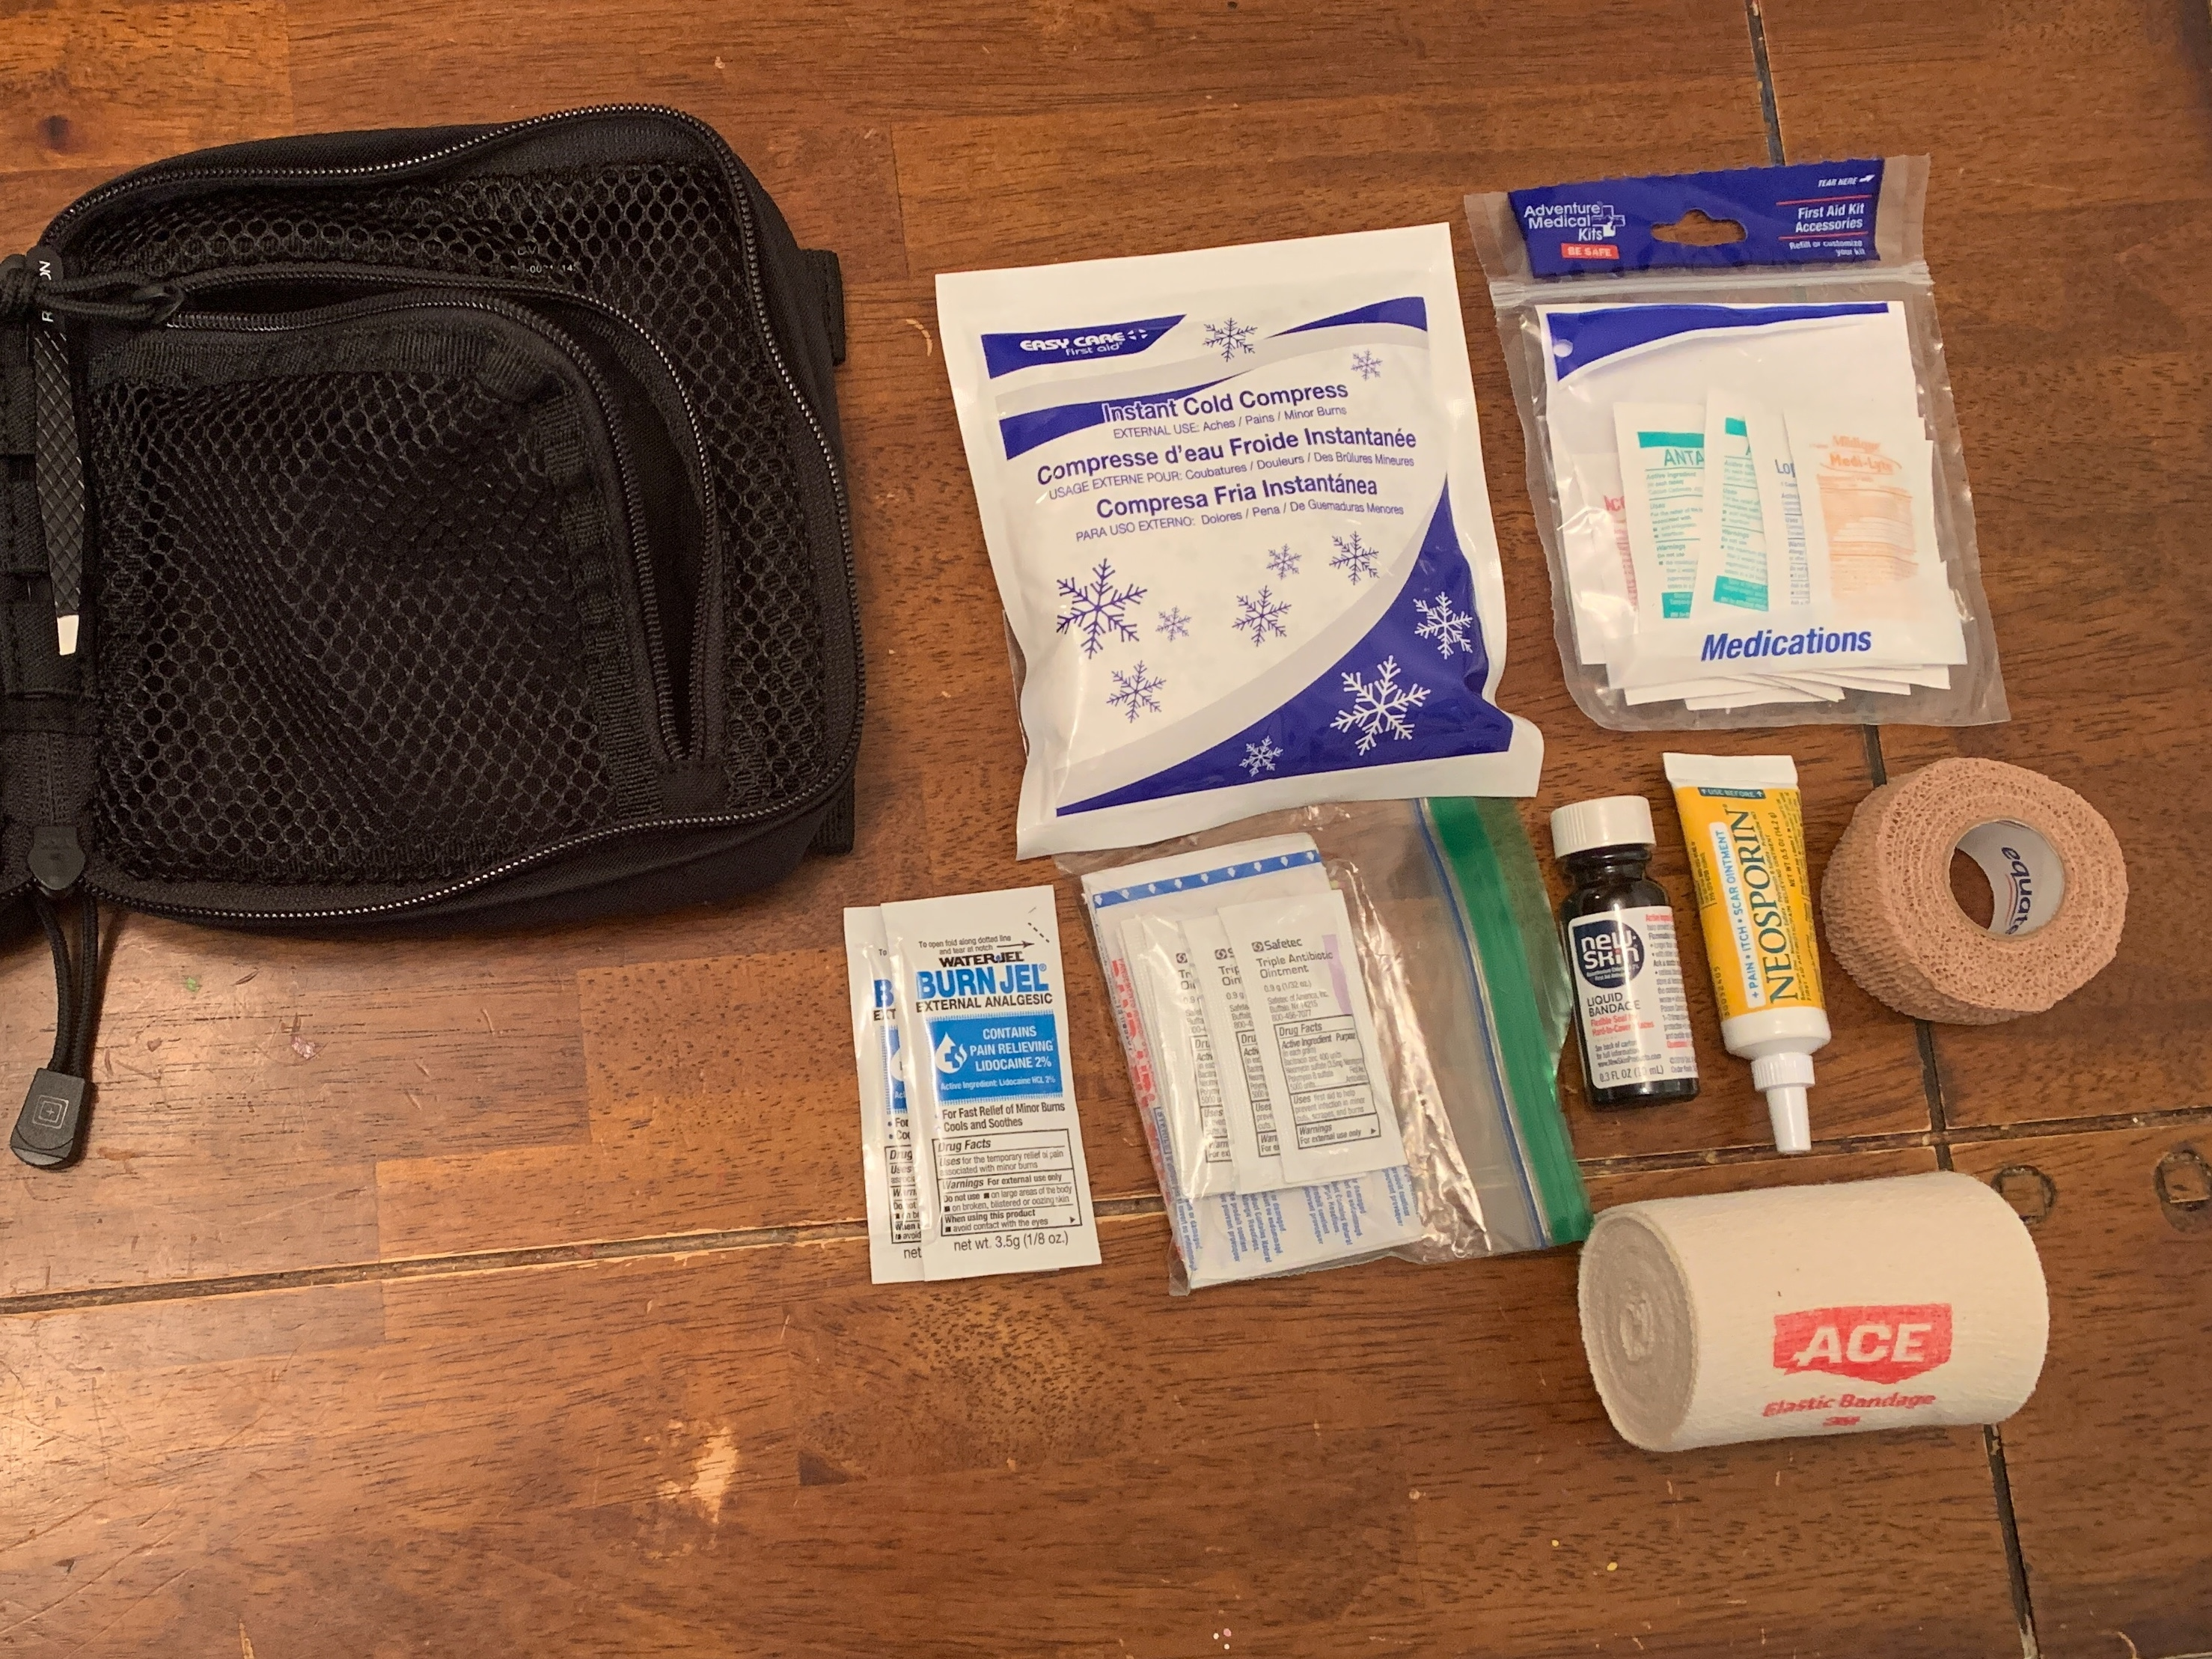 First aid kit tools displayed.